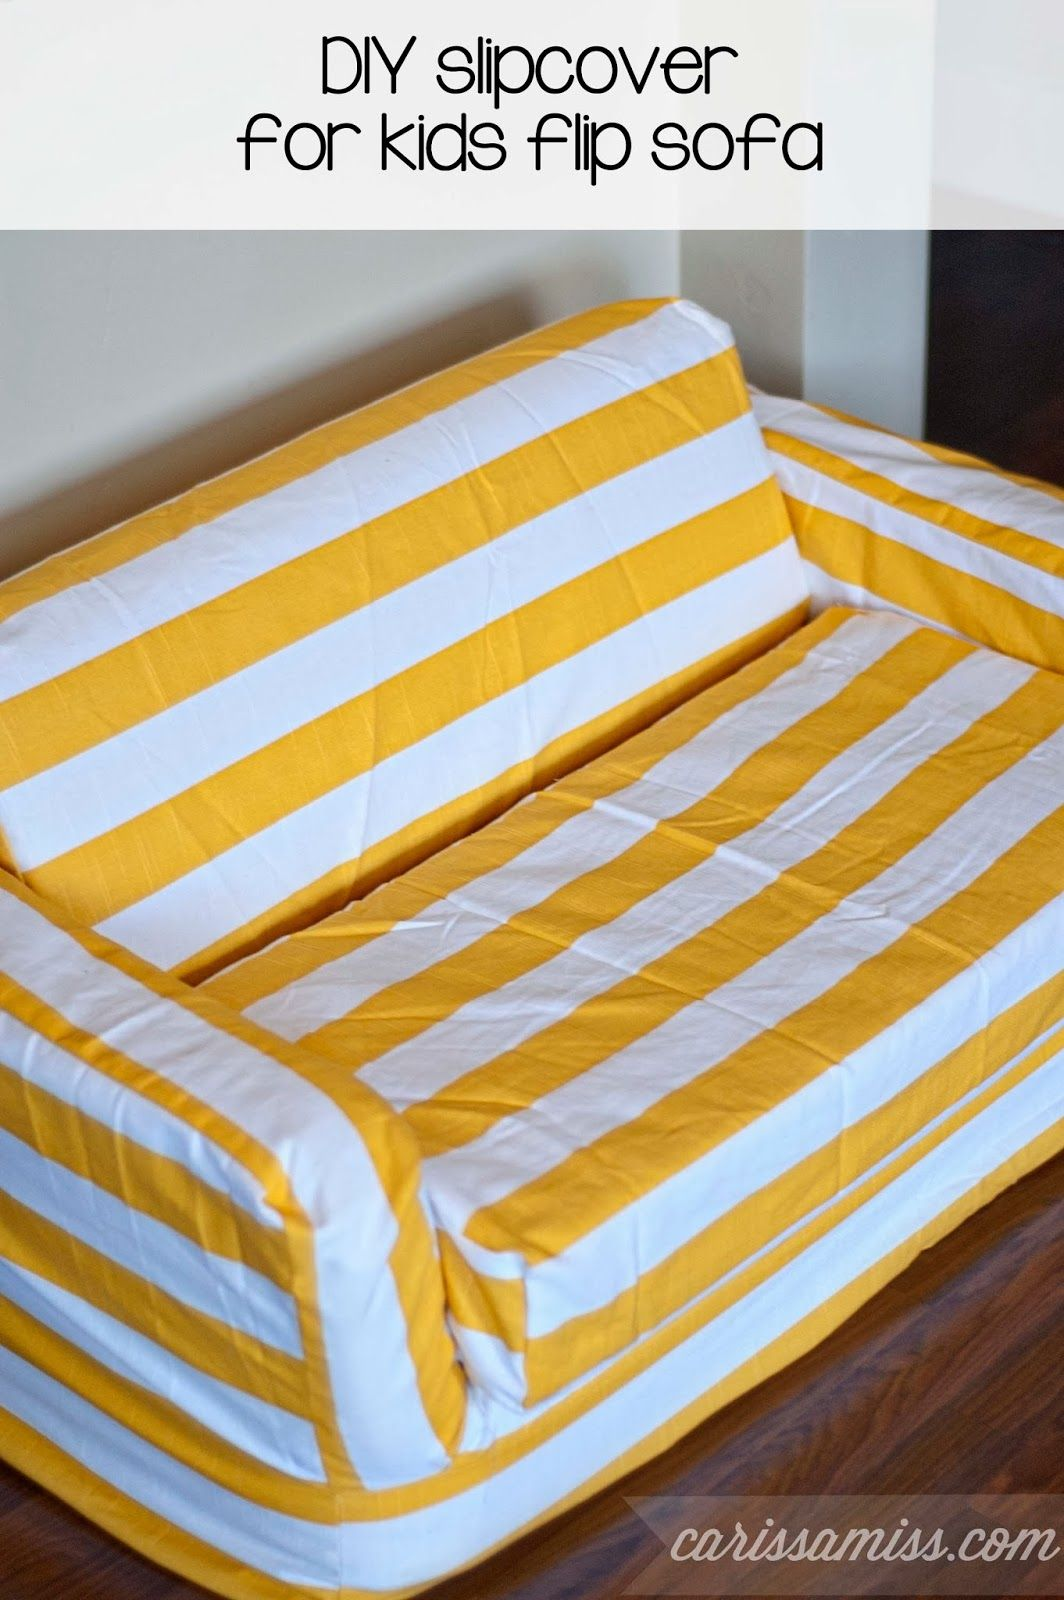 Diy Striped Slipcover For Kids Flip Sofa Diy Ideas Diy